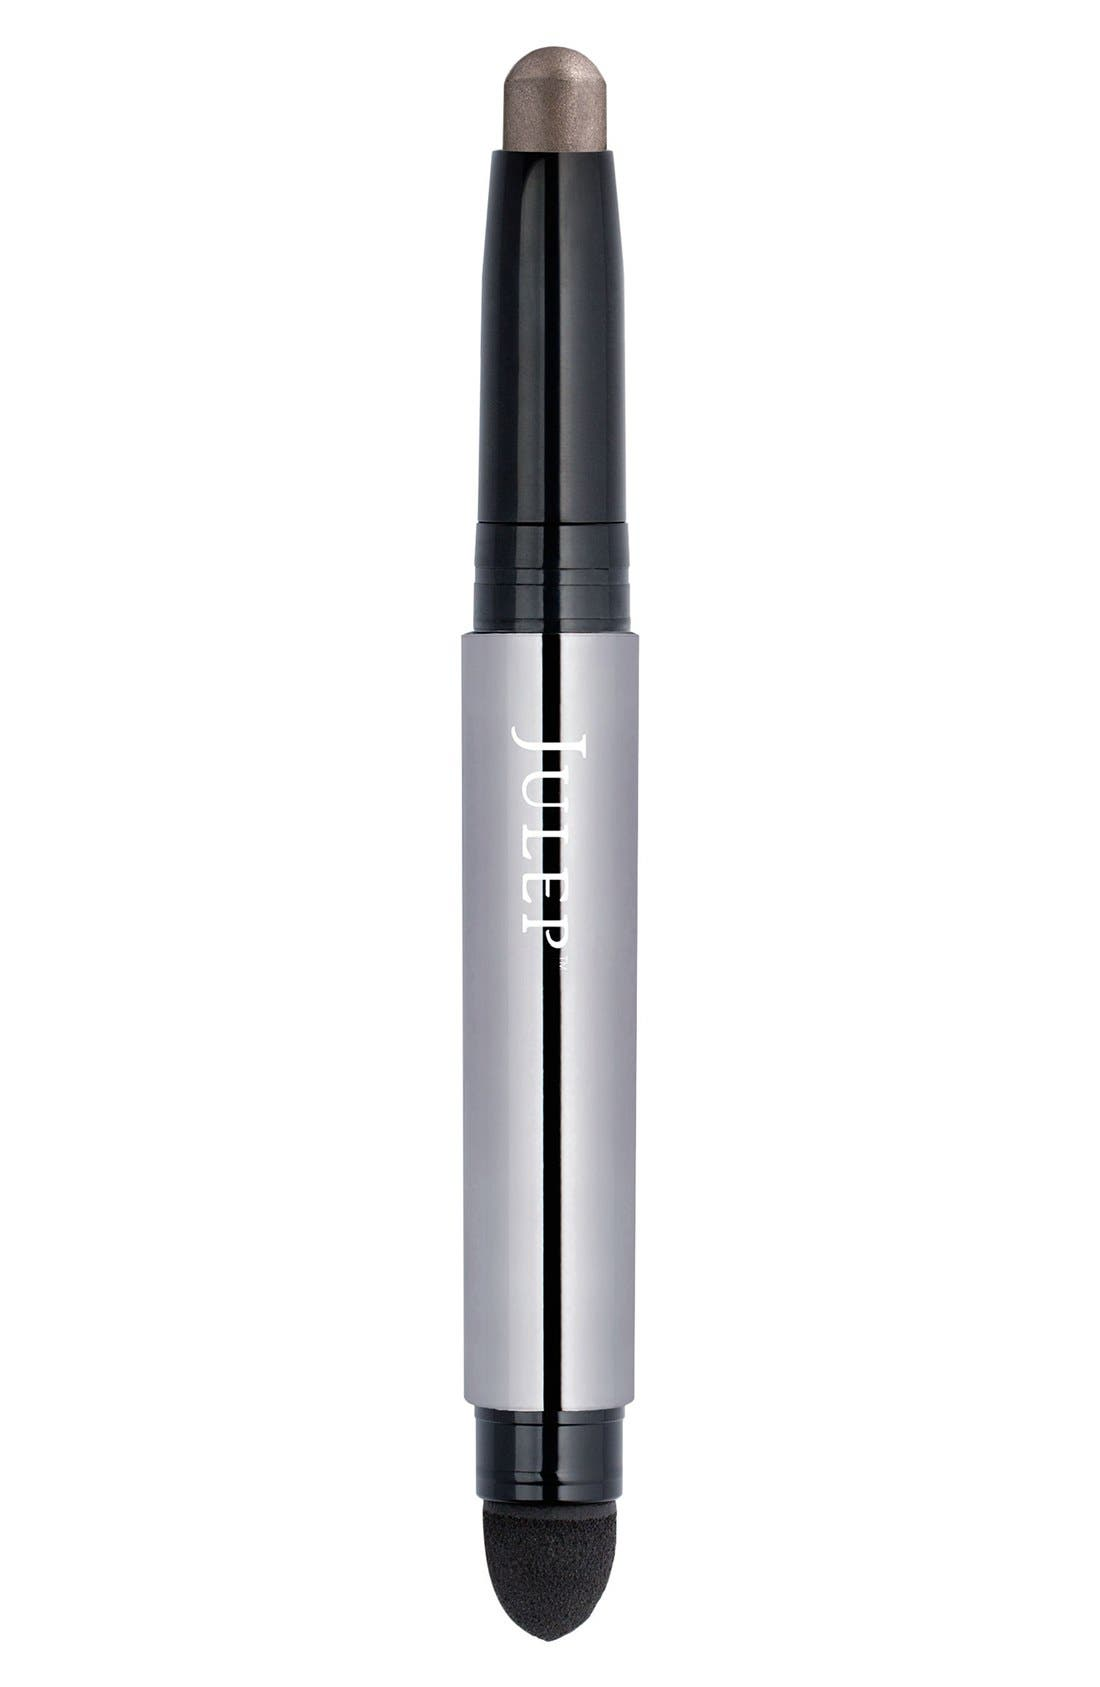 Julep<sup>™</sup> Eyeshadow 101 Eyeshadow Stick,                         Main,                         color, TAUPE SHIMMER